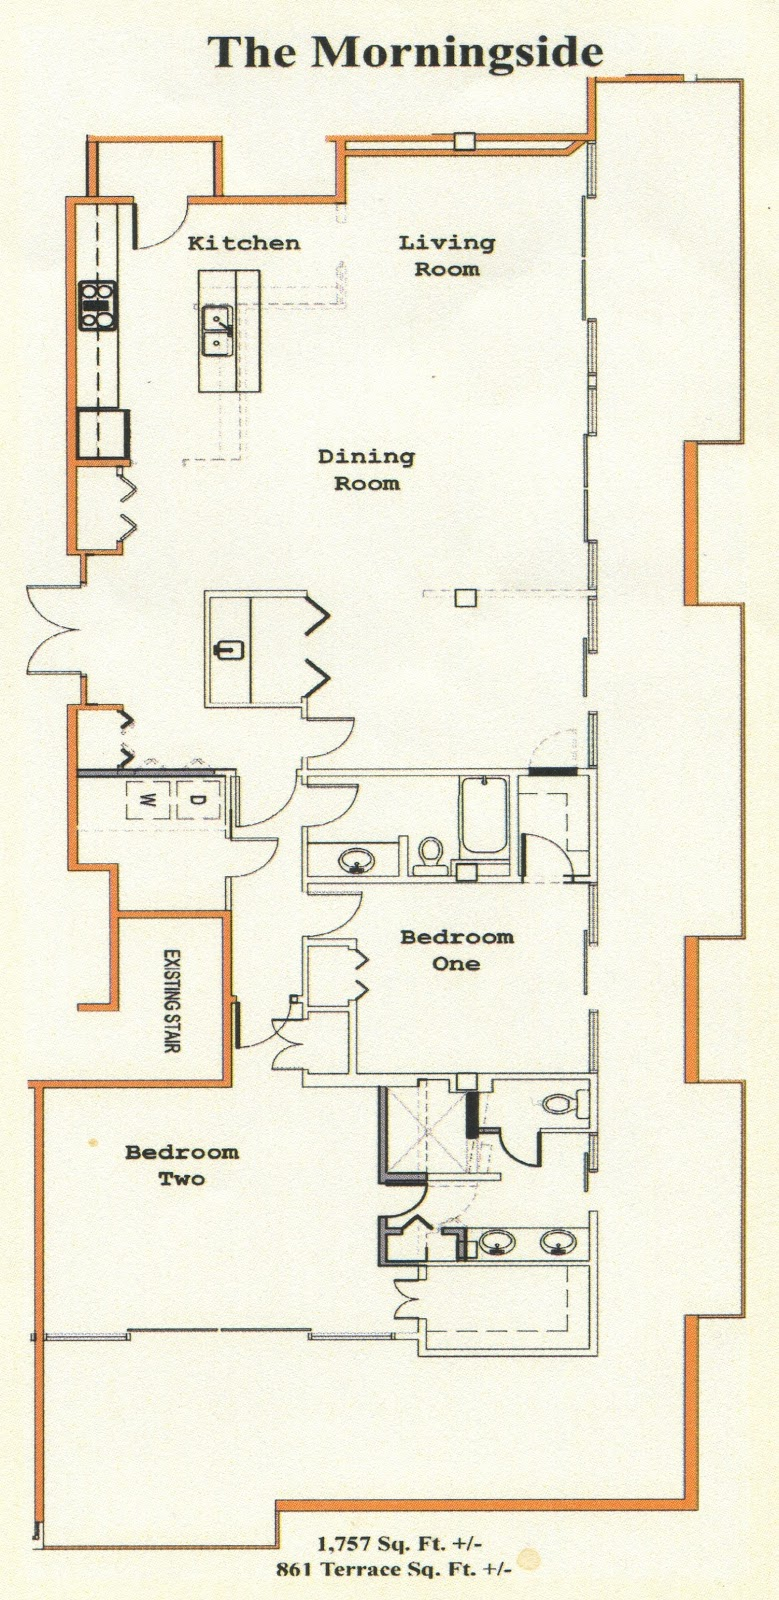 Penthouse Apartment Floor Plans